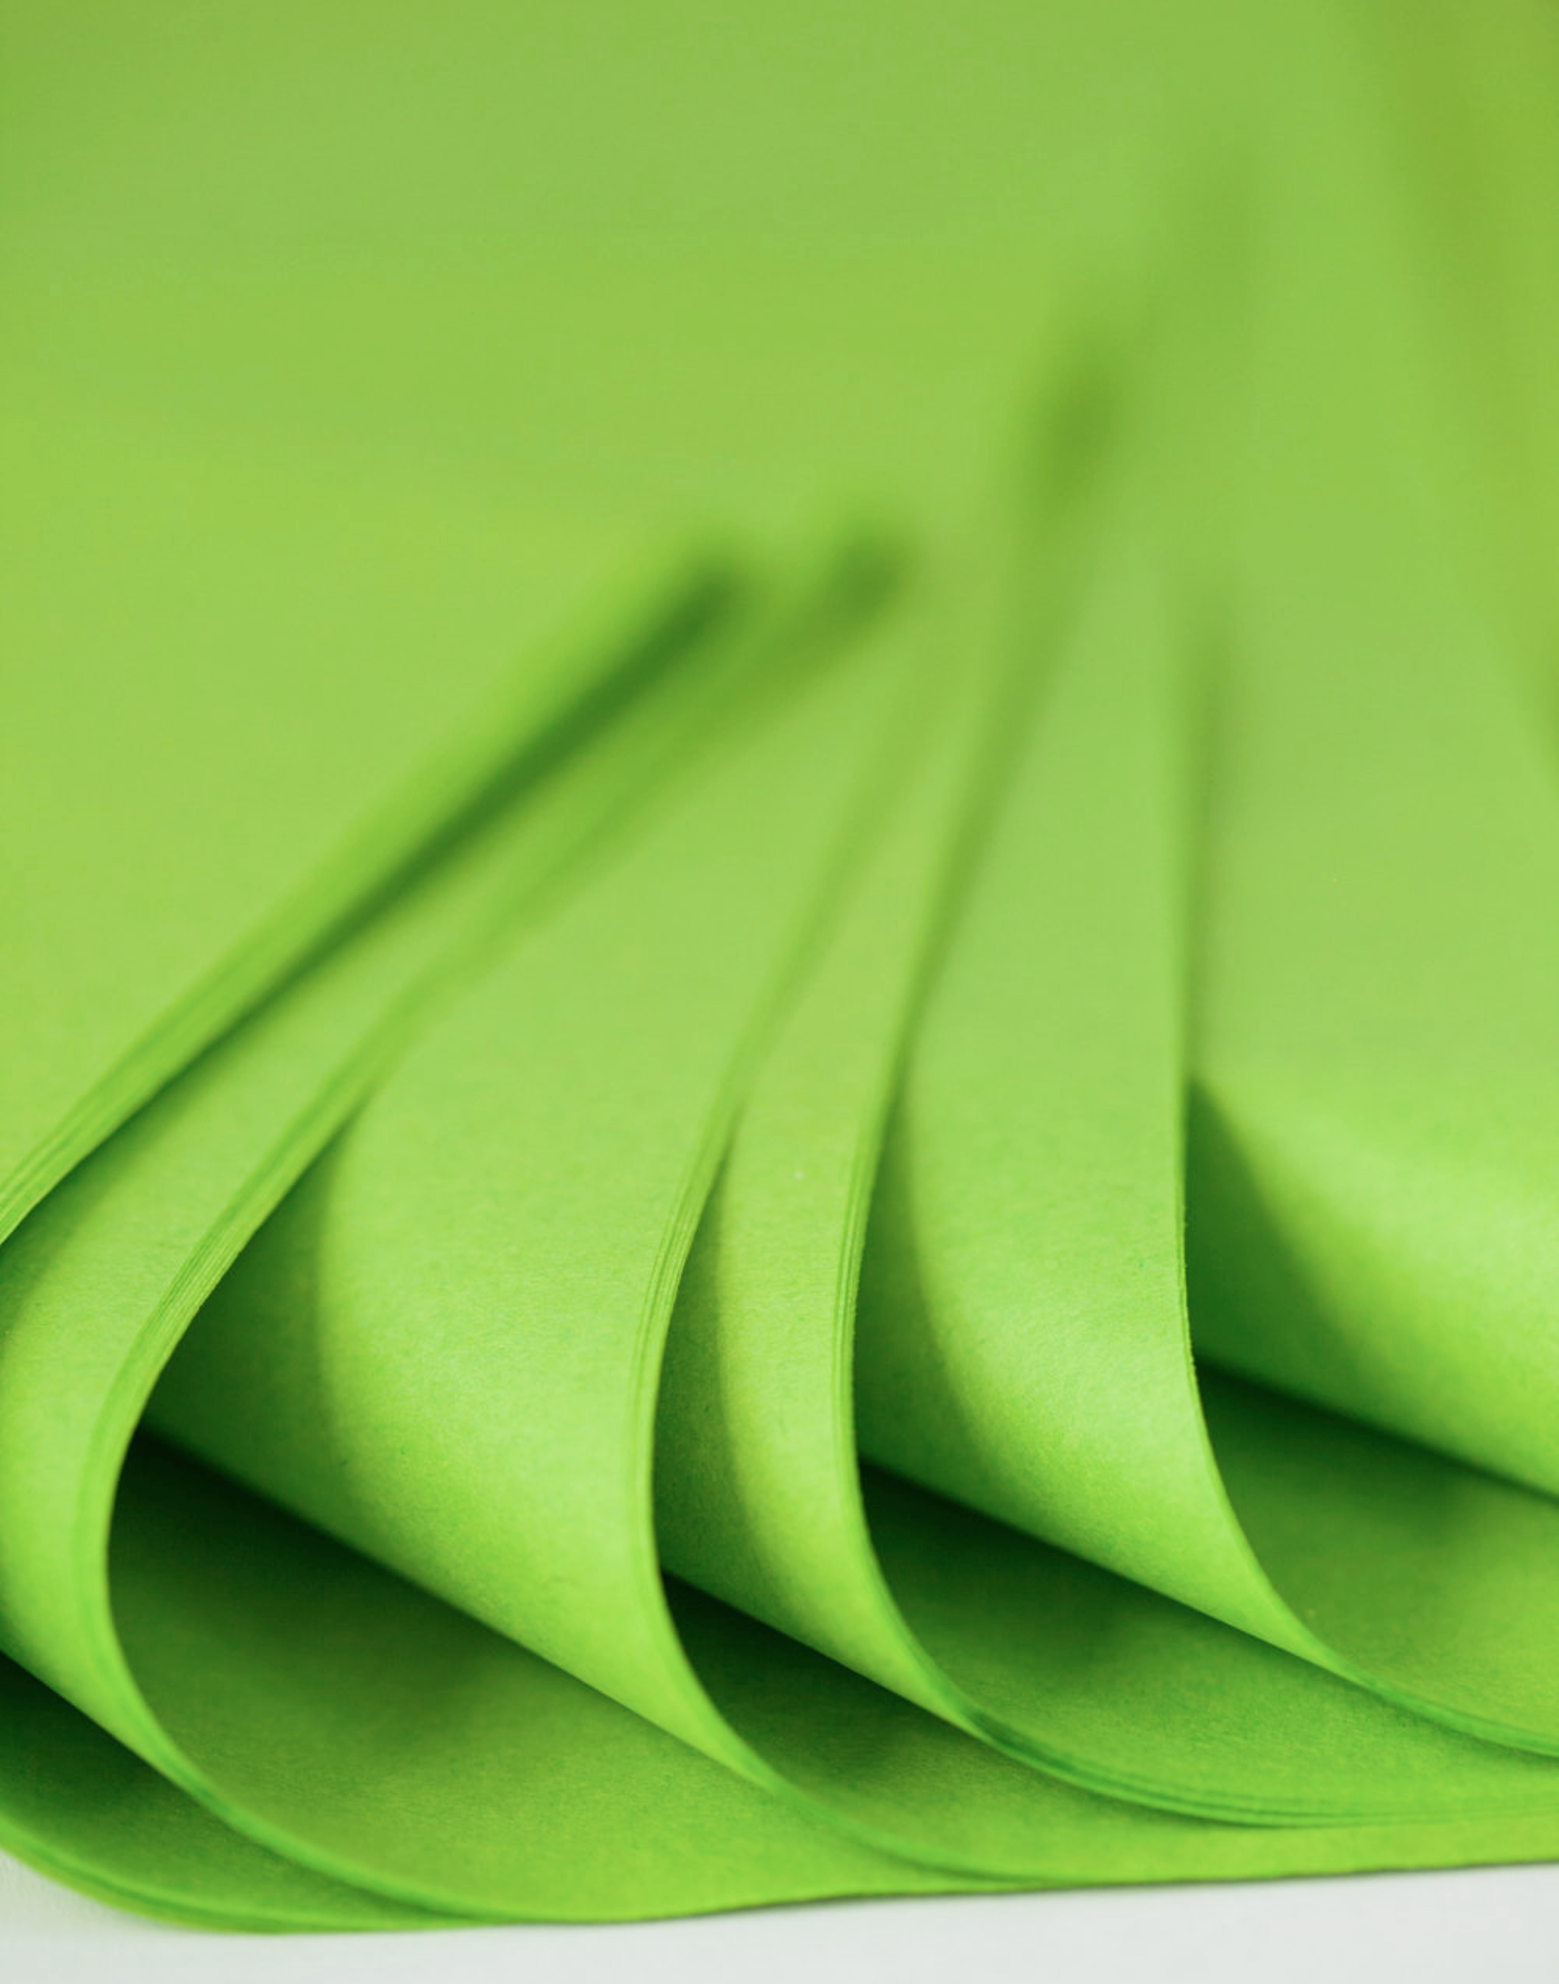 green tissue paper Color flo tissue paper is made from 100% recycled fibers #1 grade usa-mf color tissue paper we guarantee it all our color tissue papers are made with quality, pride and tradition right here in the usa.